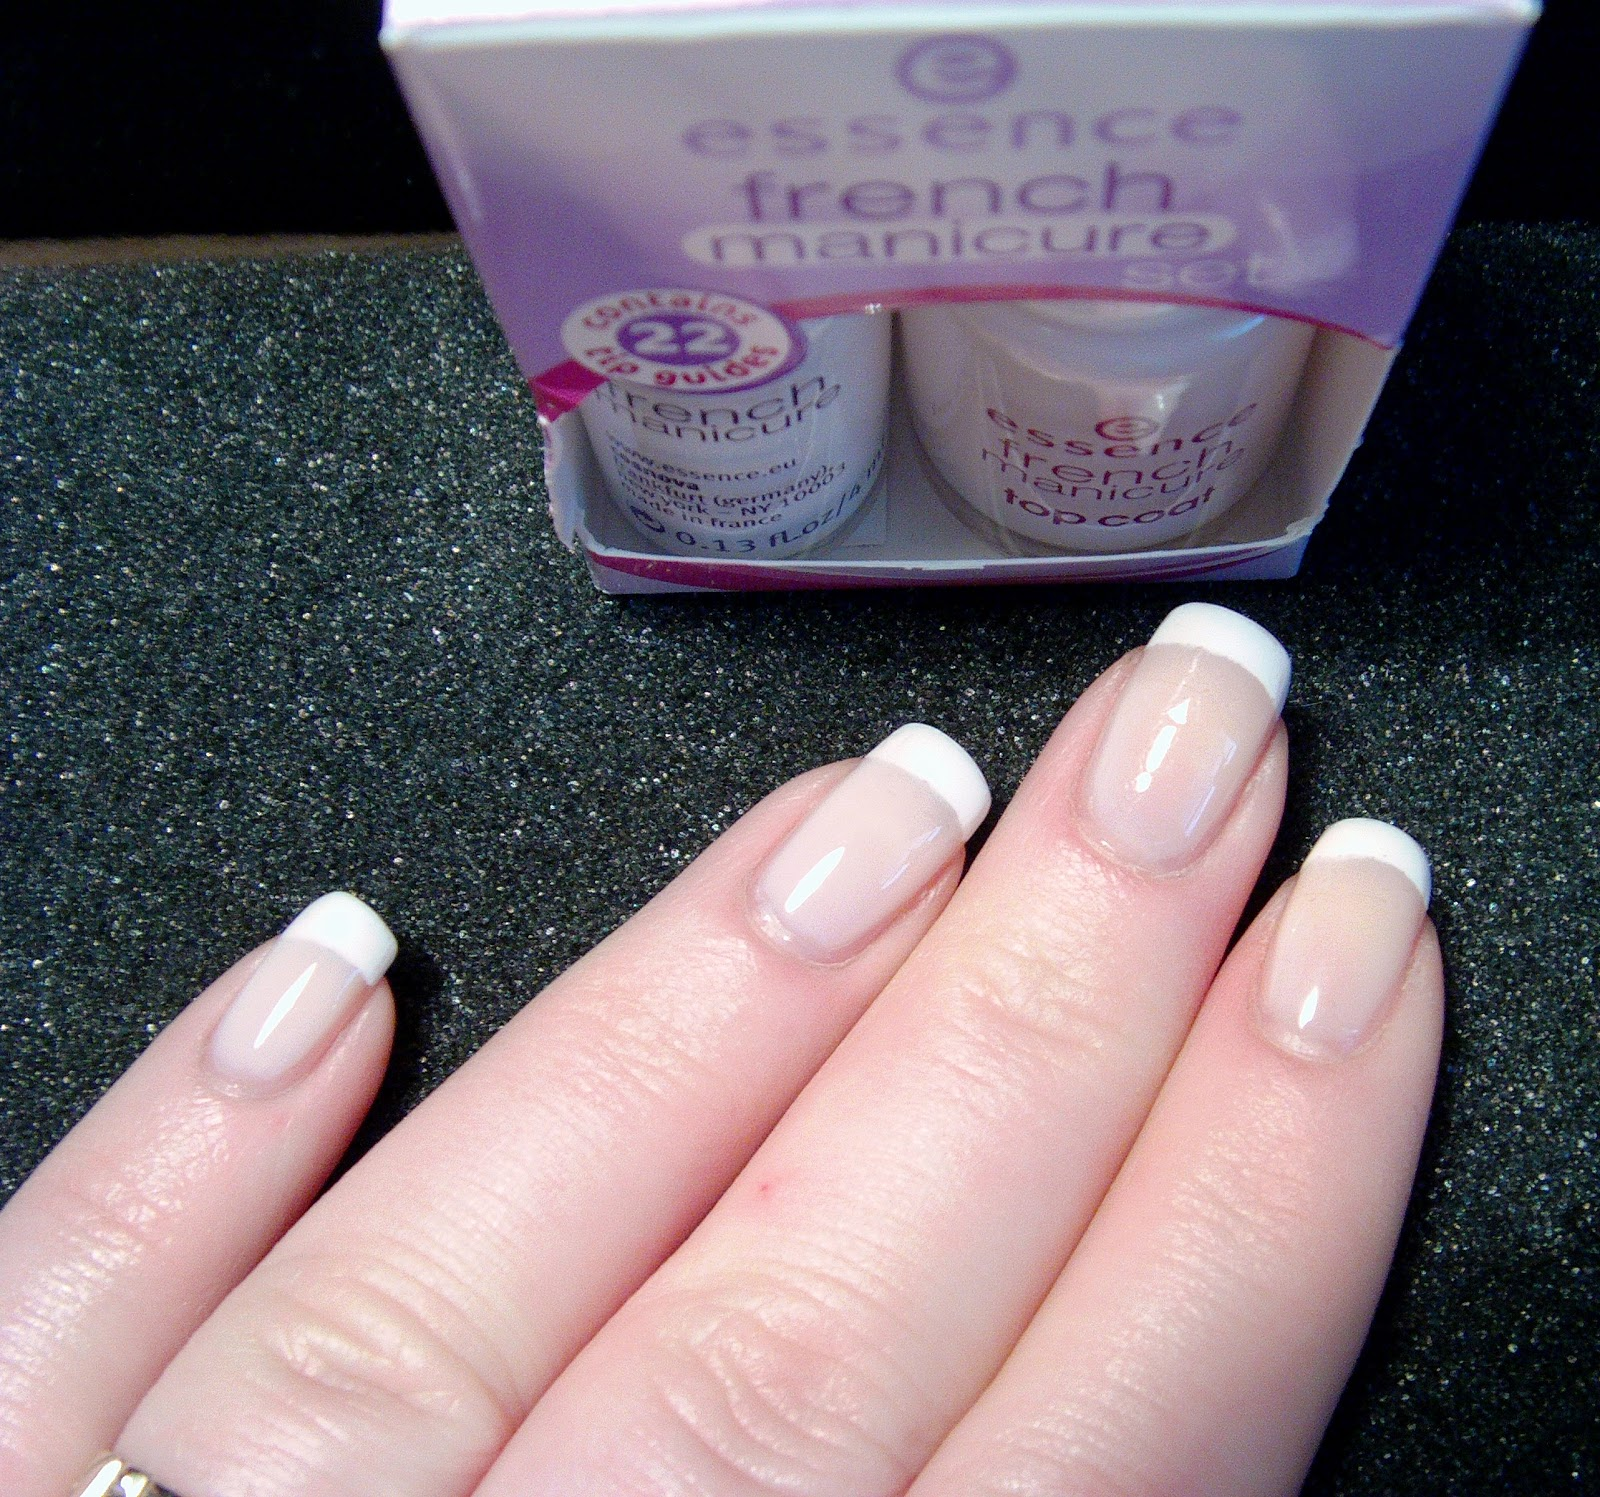 all about nails french manicure with new essence french manicure set express dry drops. Black Bedroom Furniture Sets. Home Design Ideas